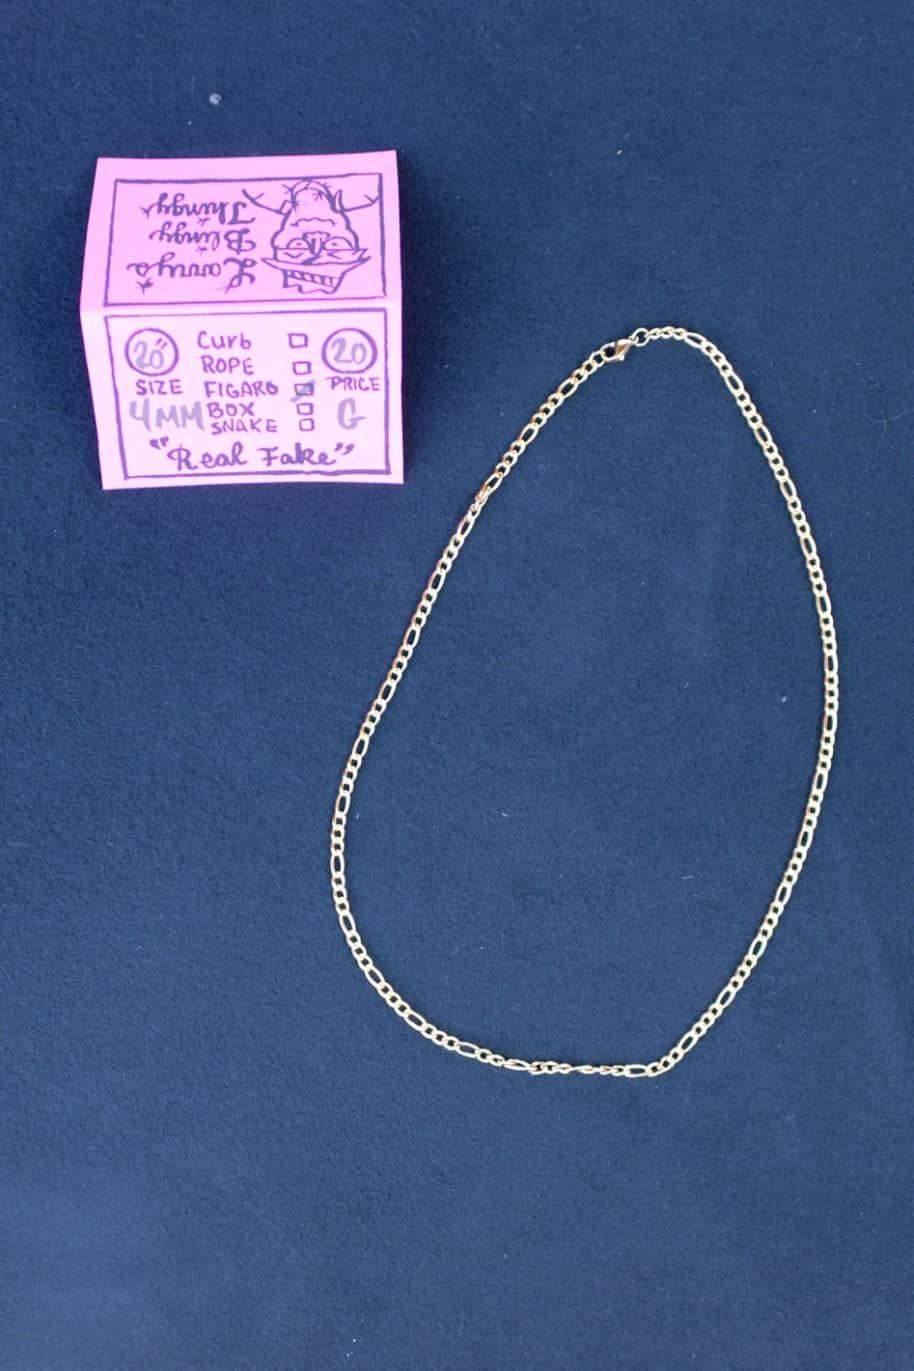 Figaro Necklace 20 inch 4 mm - Gold | Jewellery by Larry's Blingy Thingy 1